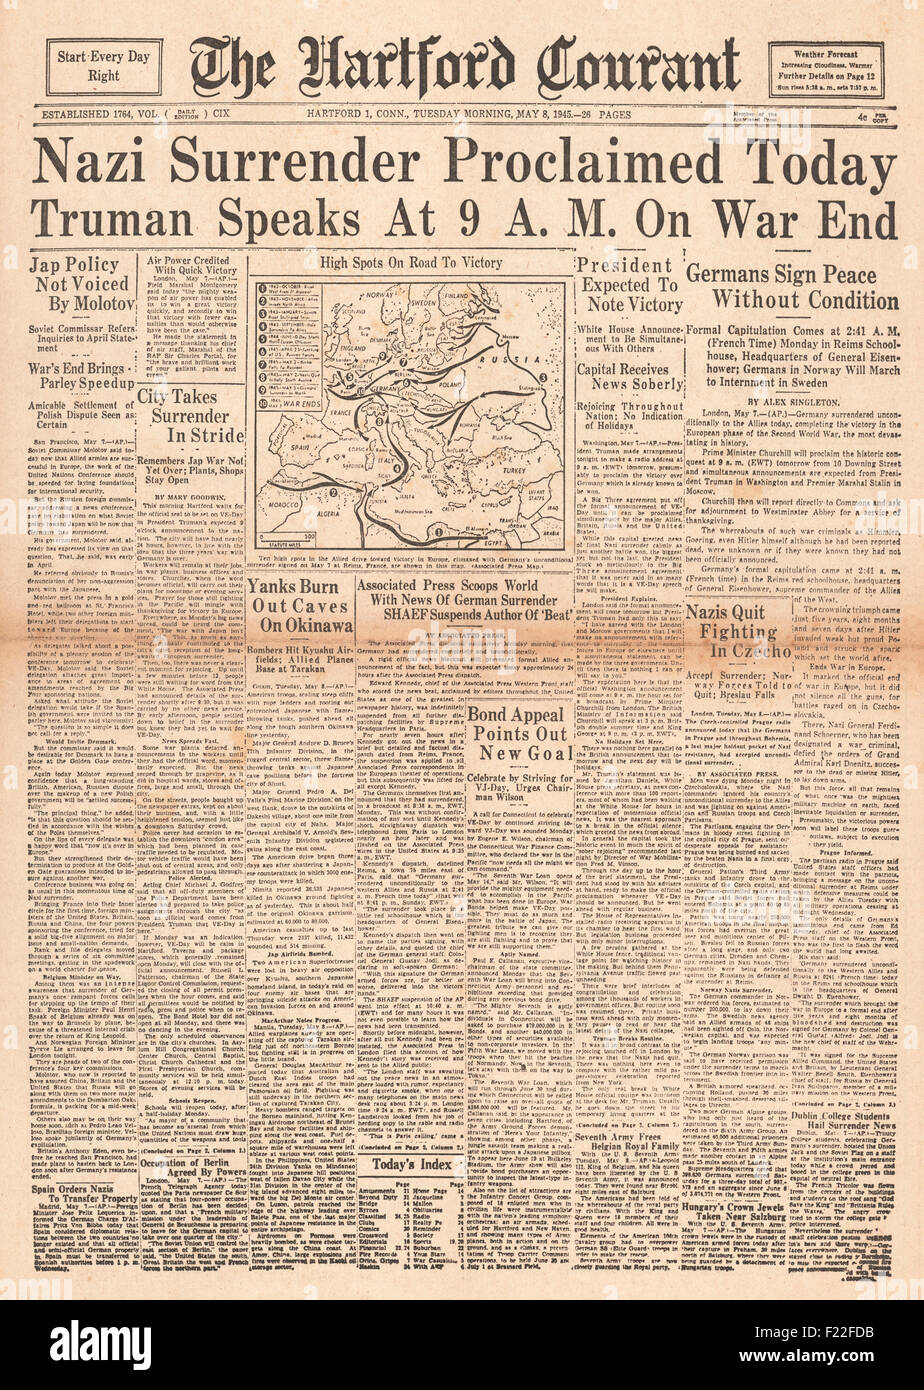 1945 Hartford Courant front page reporting VE Day Stock